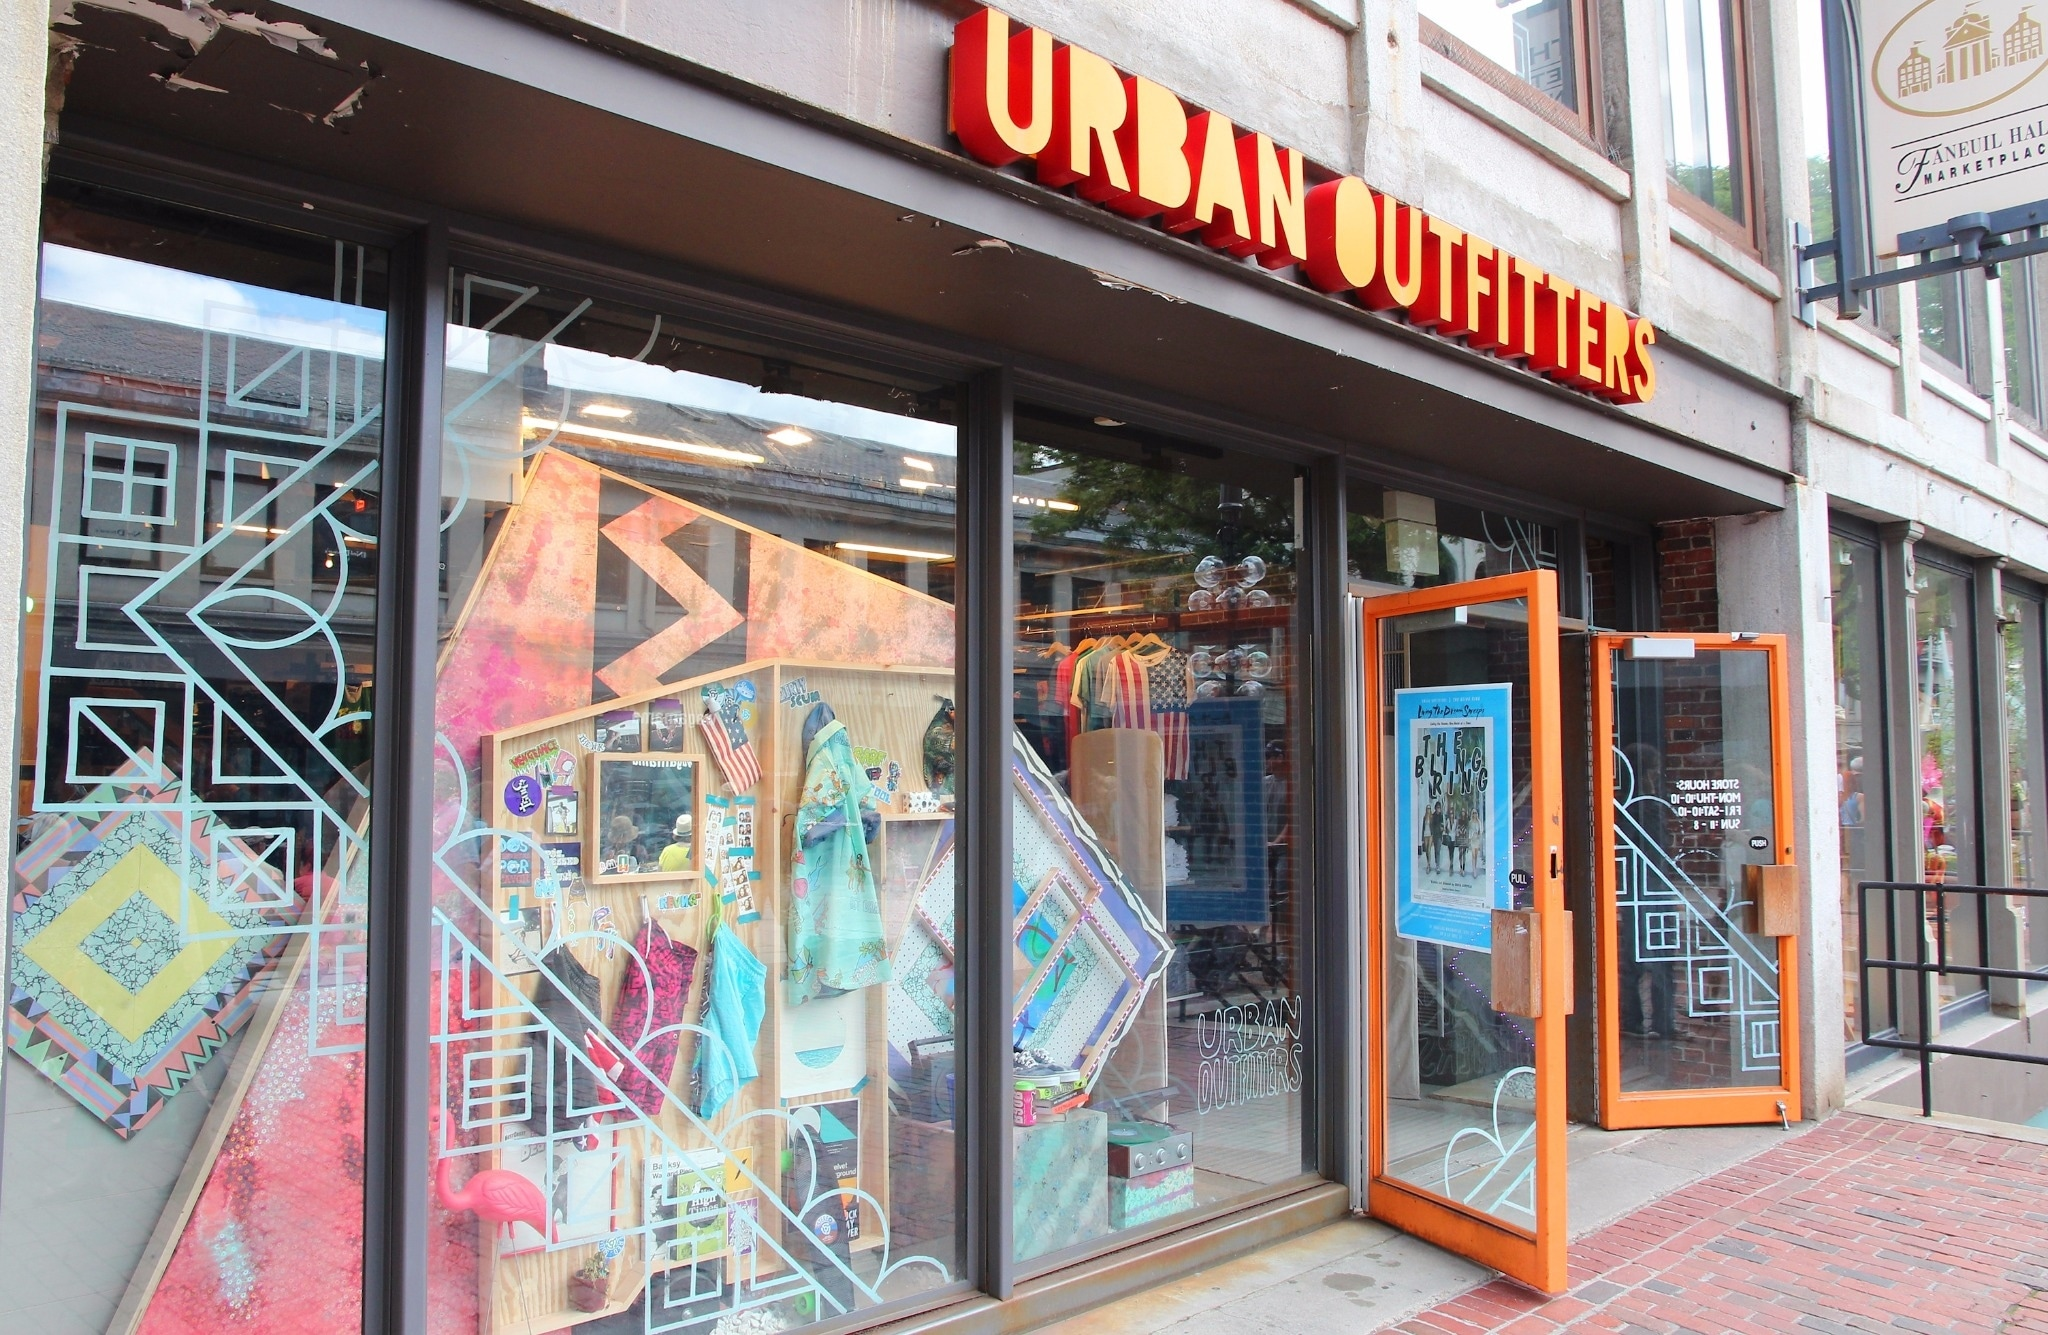 Focus on 3 to 5 home trends that you see emerging for the Urban Outfitters customer and Brand for Fall Are you interested in an internship in Philly with Are you interested in an internship in Philly with.